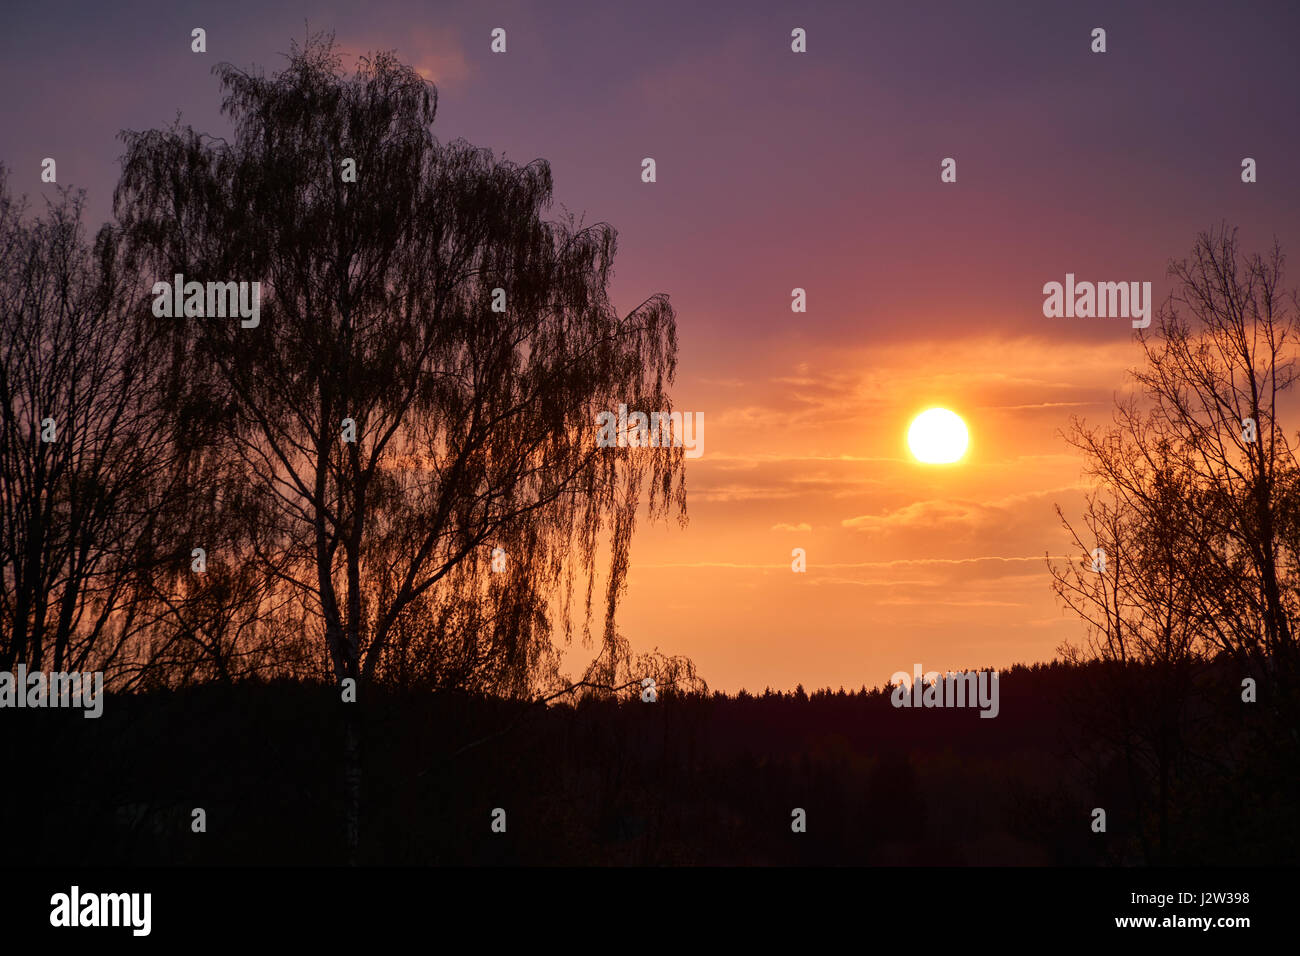 Orange - magenta sunset with a weeping willow in the foreground. - Stock Image